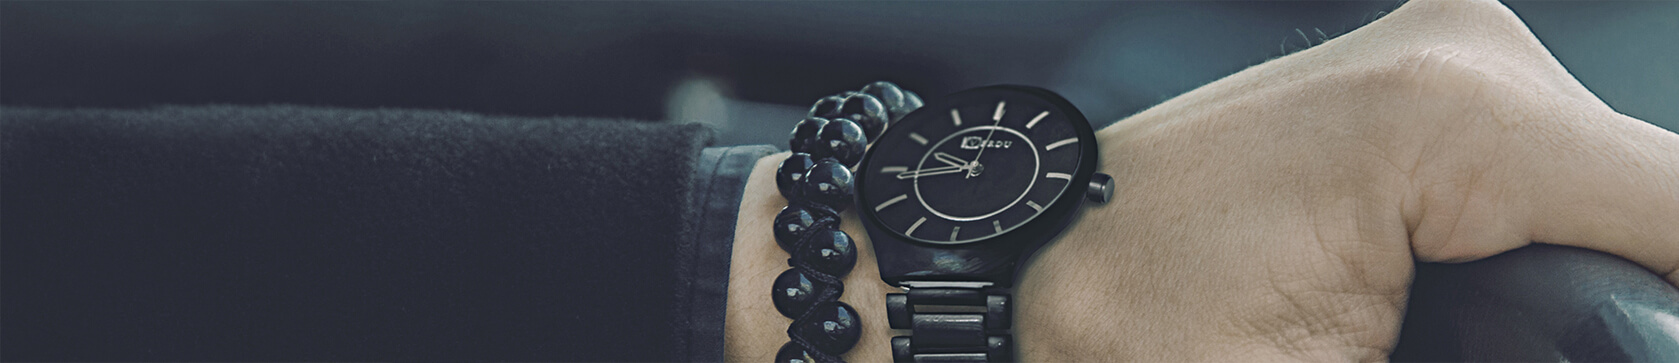 MEN'S WATCHES WITH A BRACELET